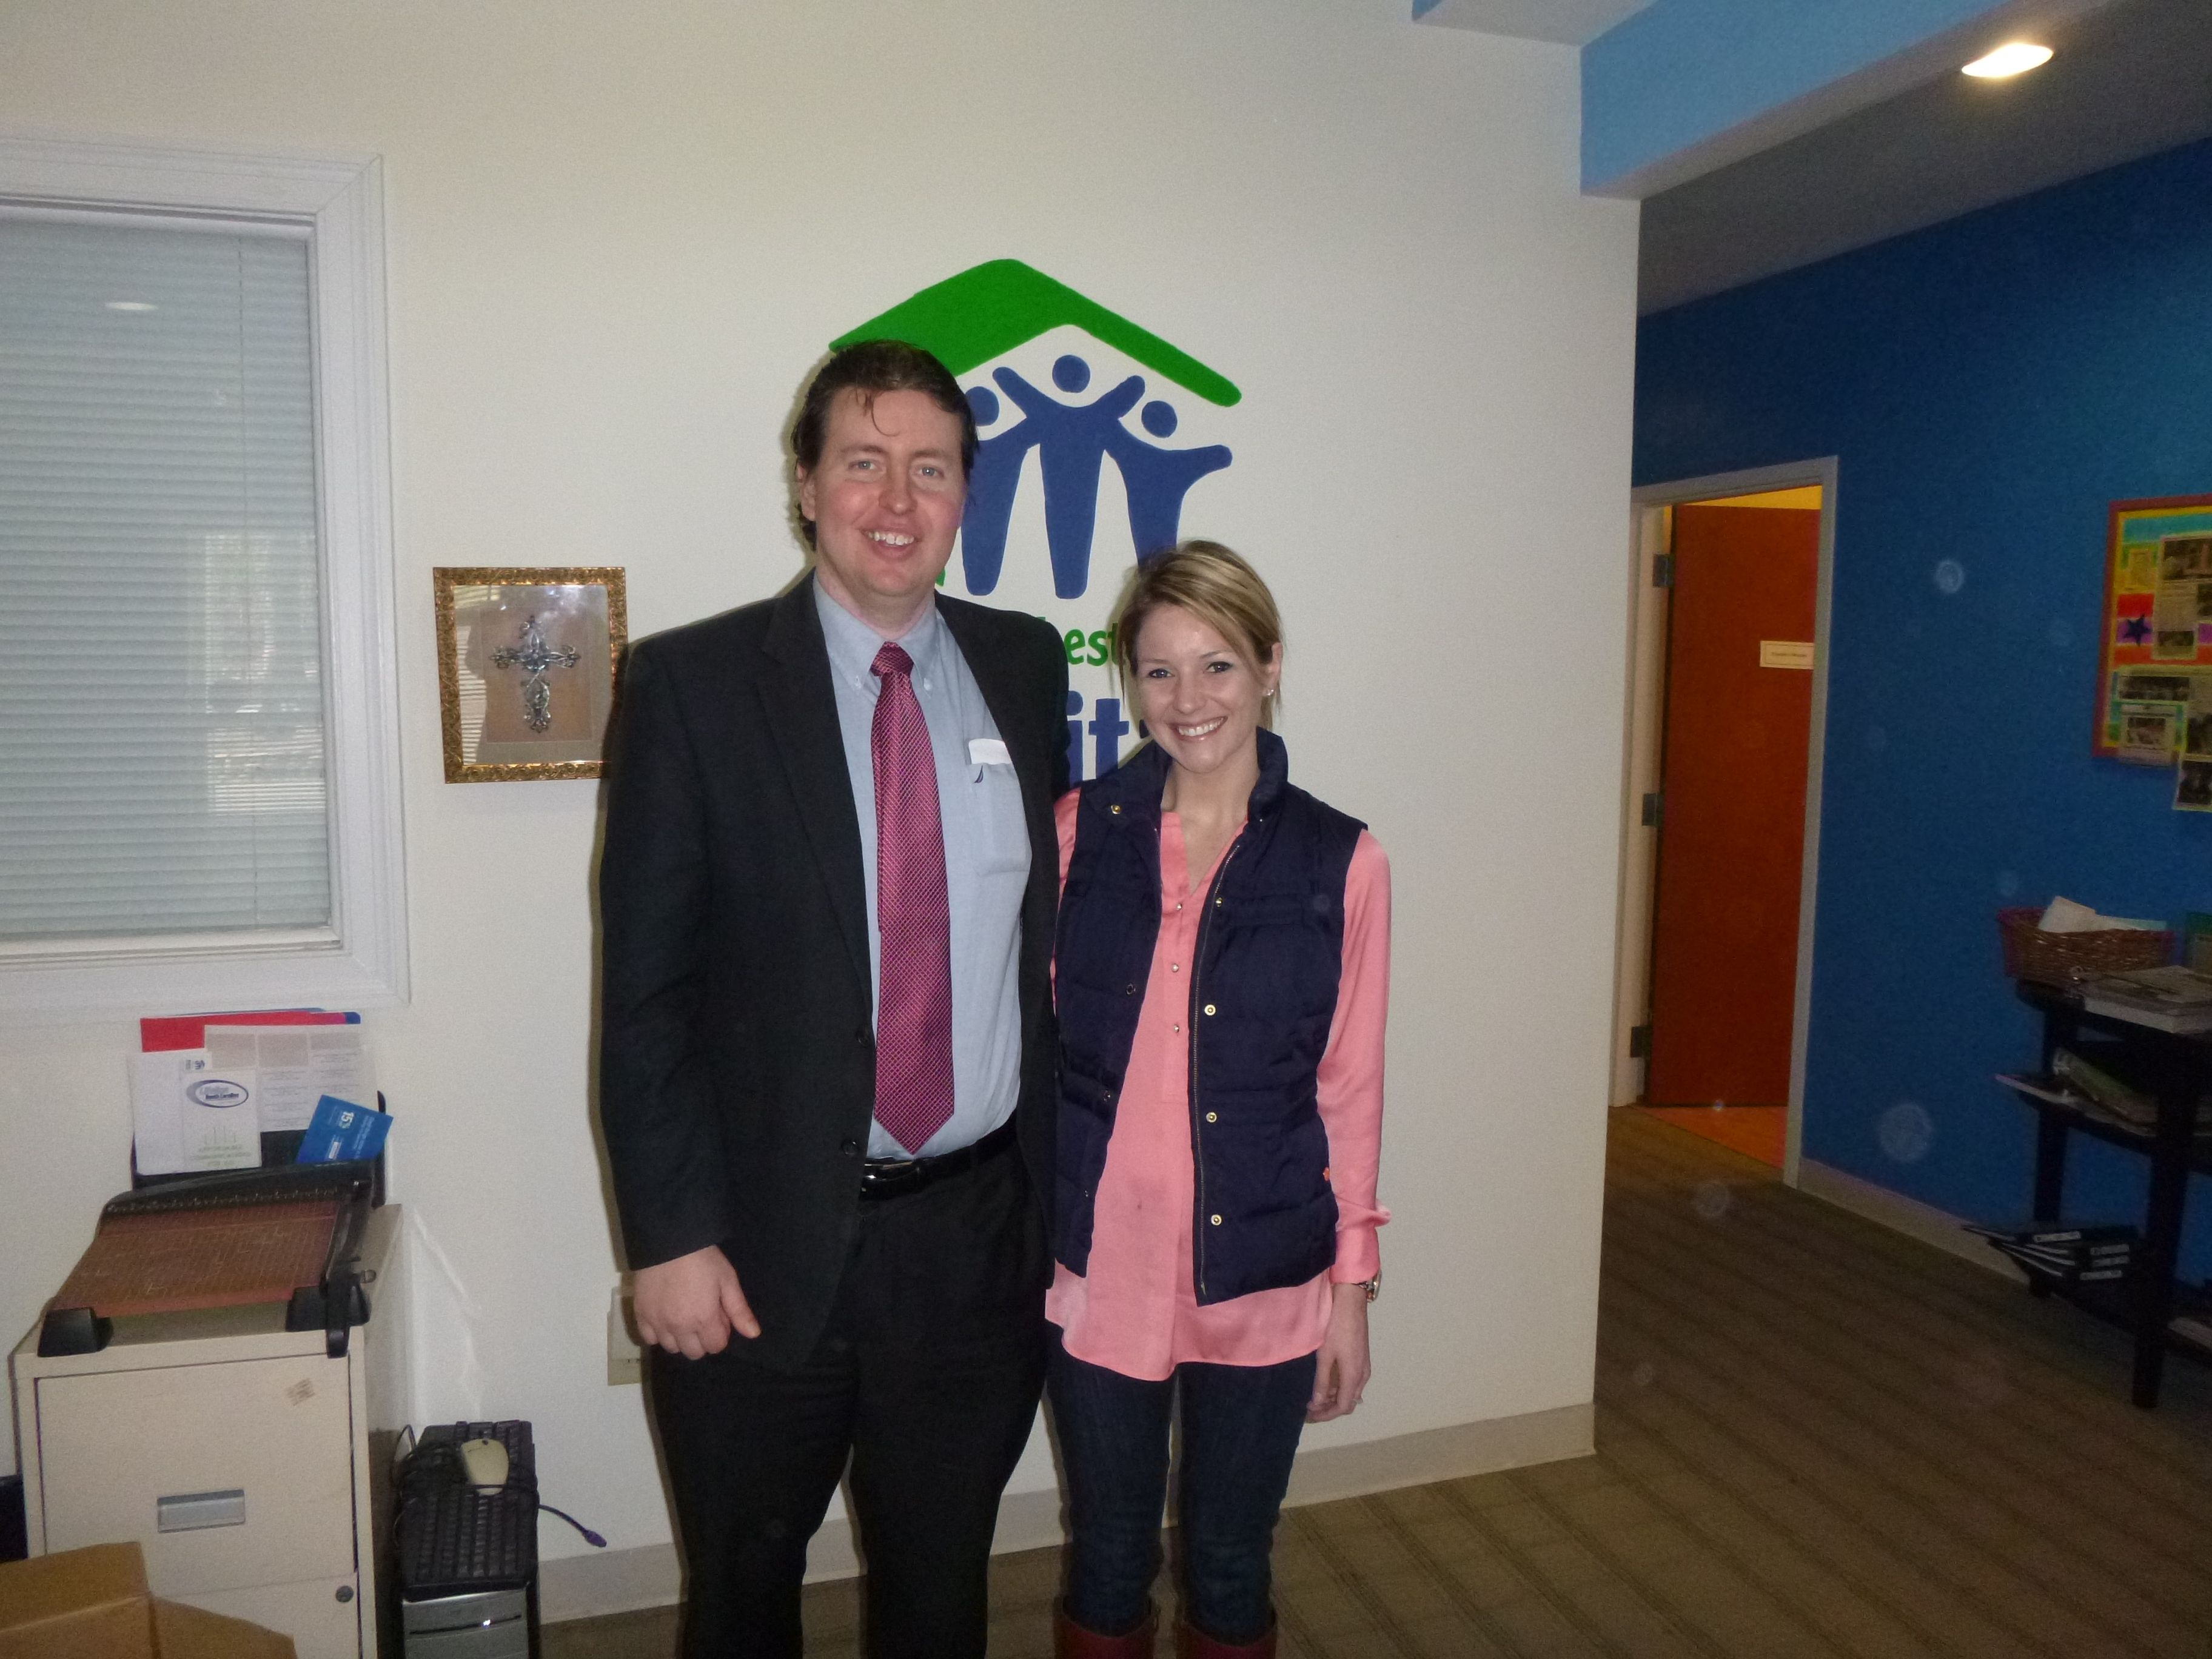 #Attorney Evan Guthrie with Lauren Sprinkle, Charleston School of Law Class of 2016 at the South Carolina Bar Young Lawyers Division Habitat For Humanity Wills Clinic at Dorchester Habitat in Summerville SC, On Saturday February 15th, 2014.